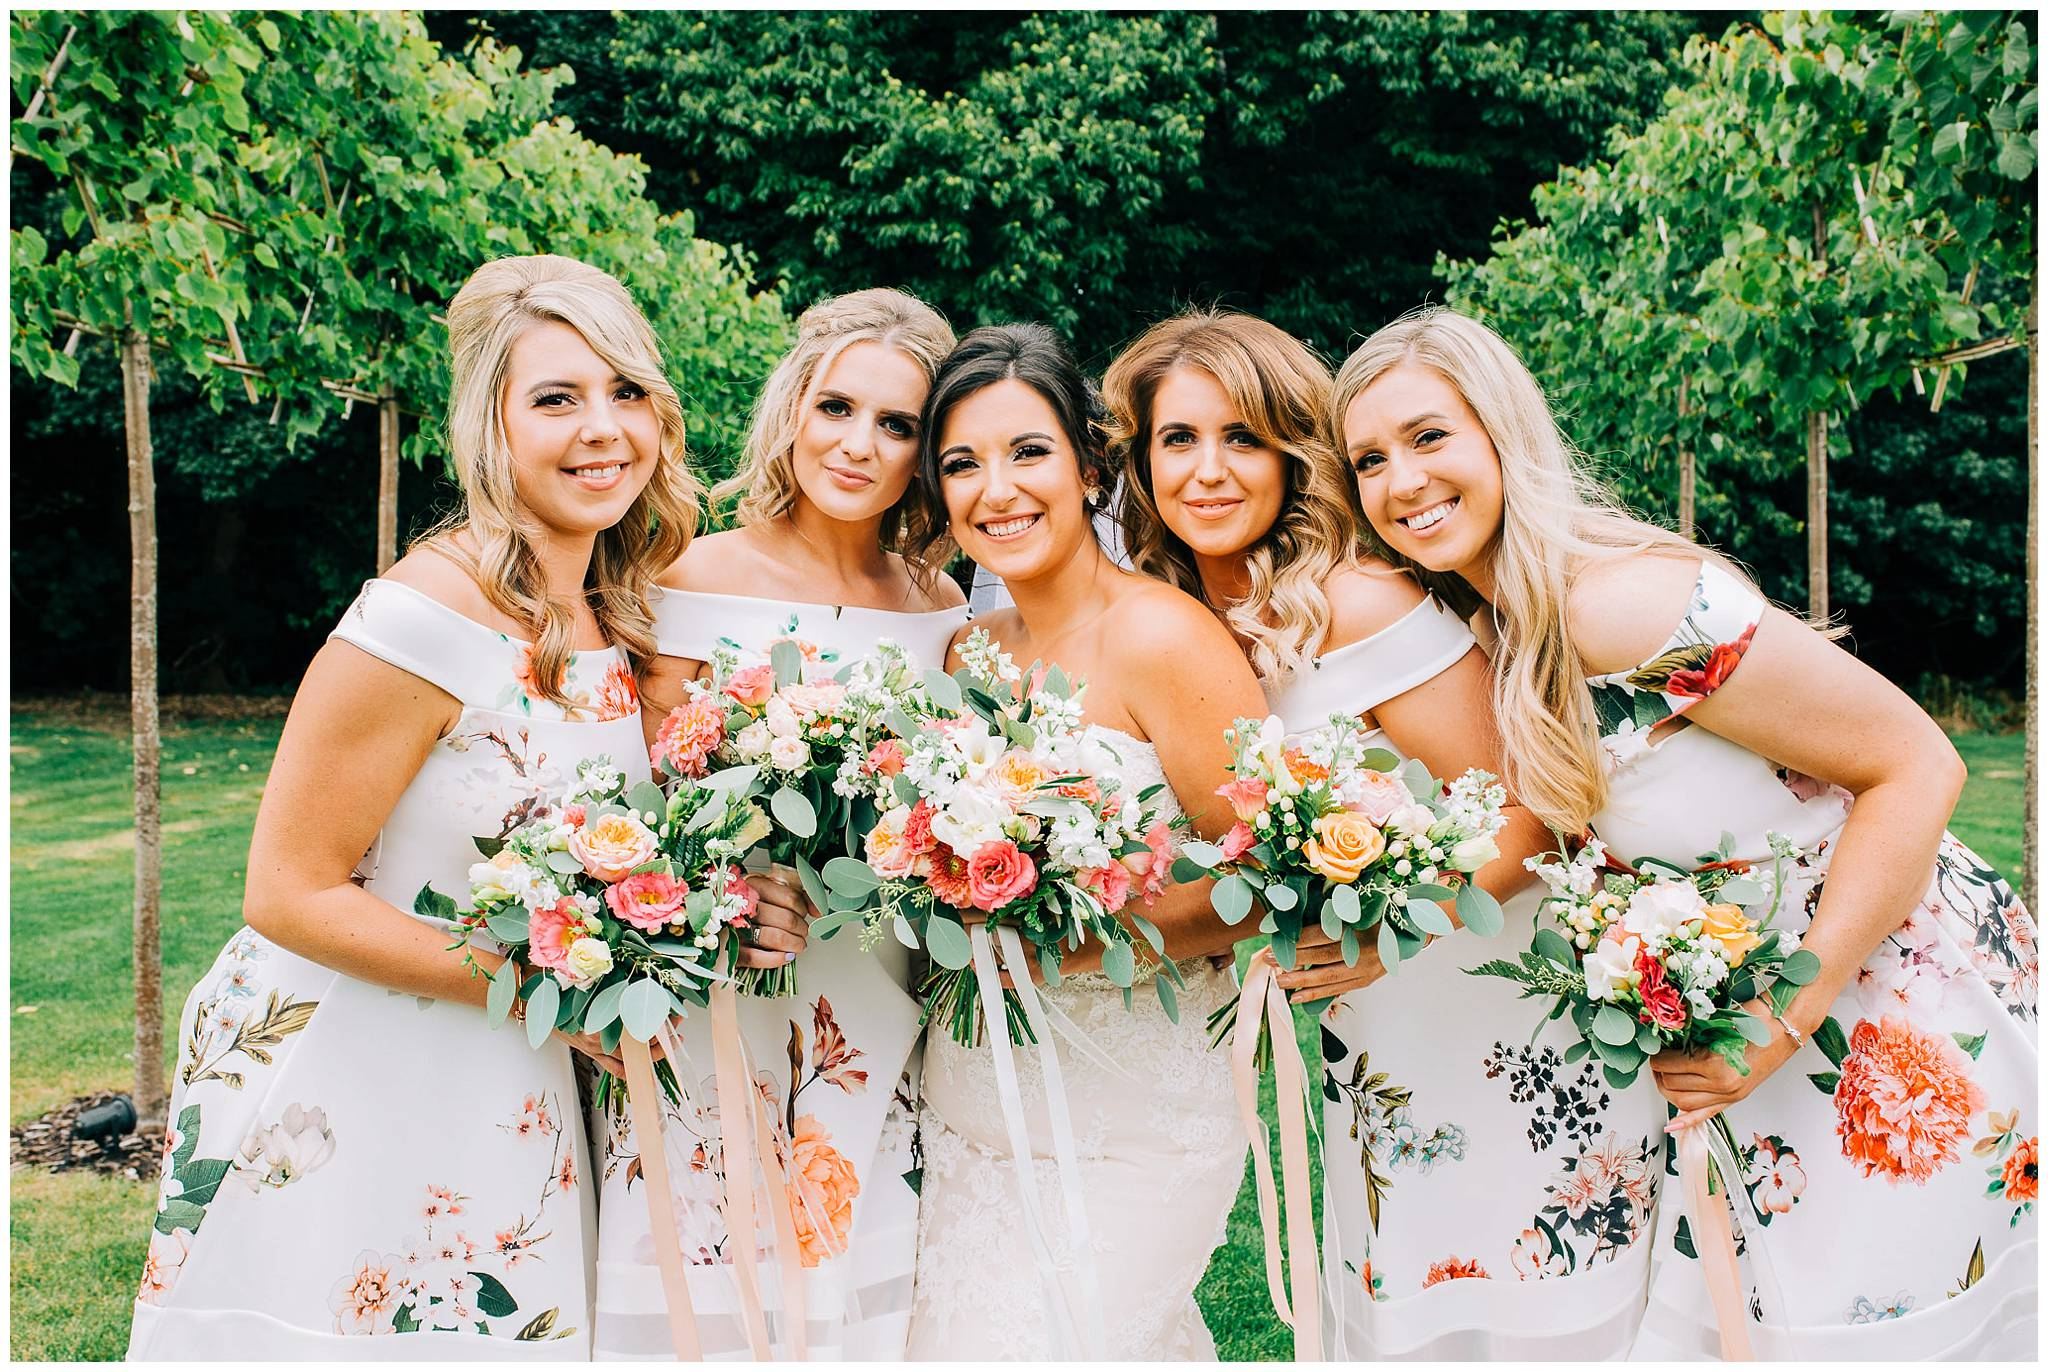 Chic Summer Wedding at Hazel Gap Barn - Nottinghamshire Photographer40.jpg